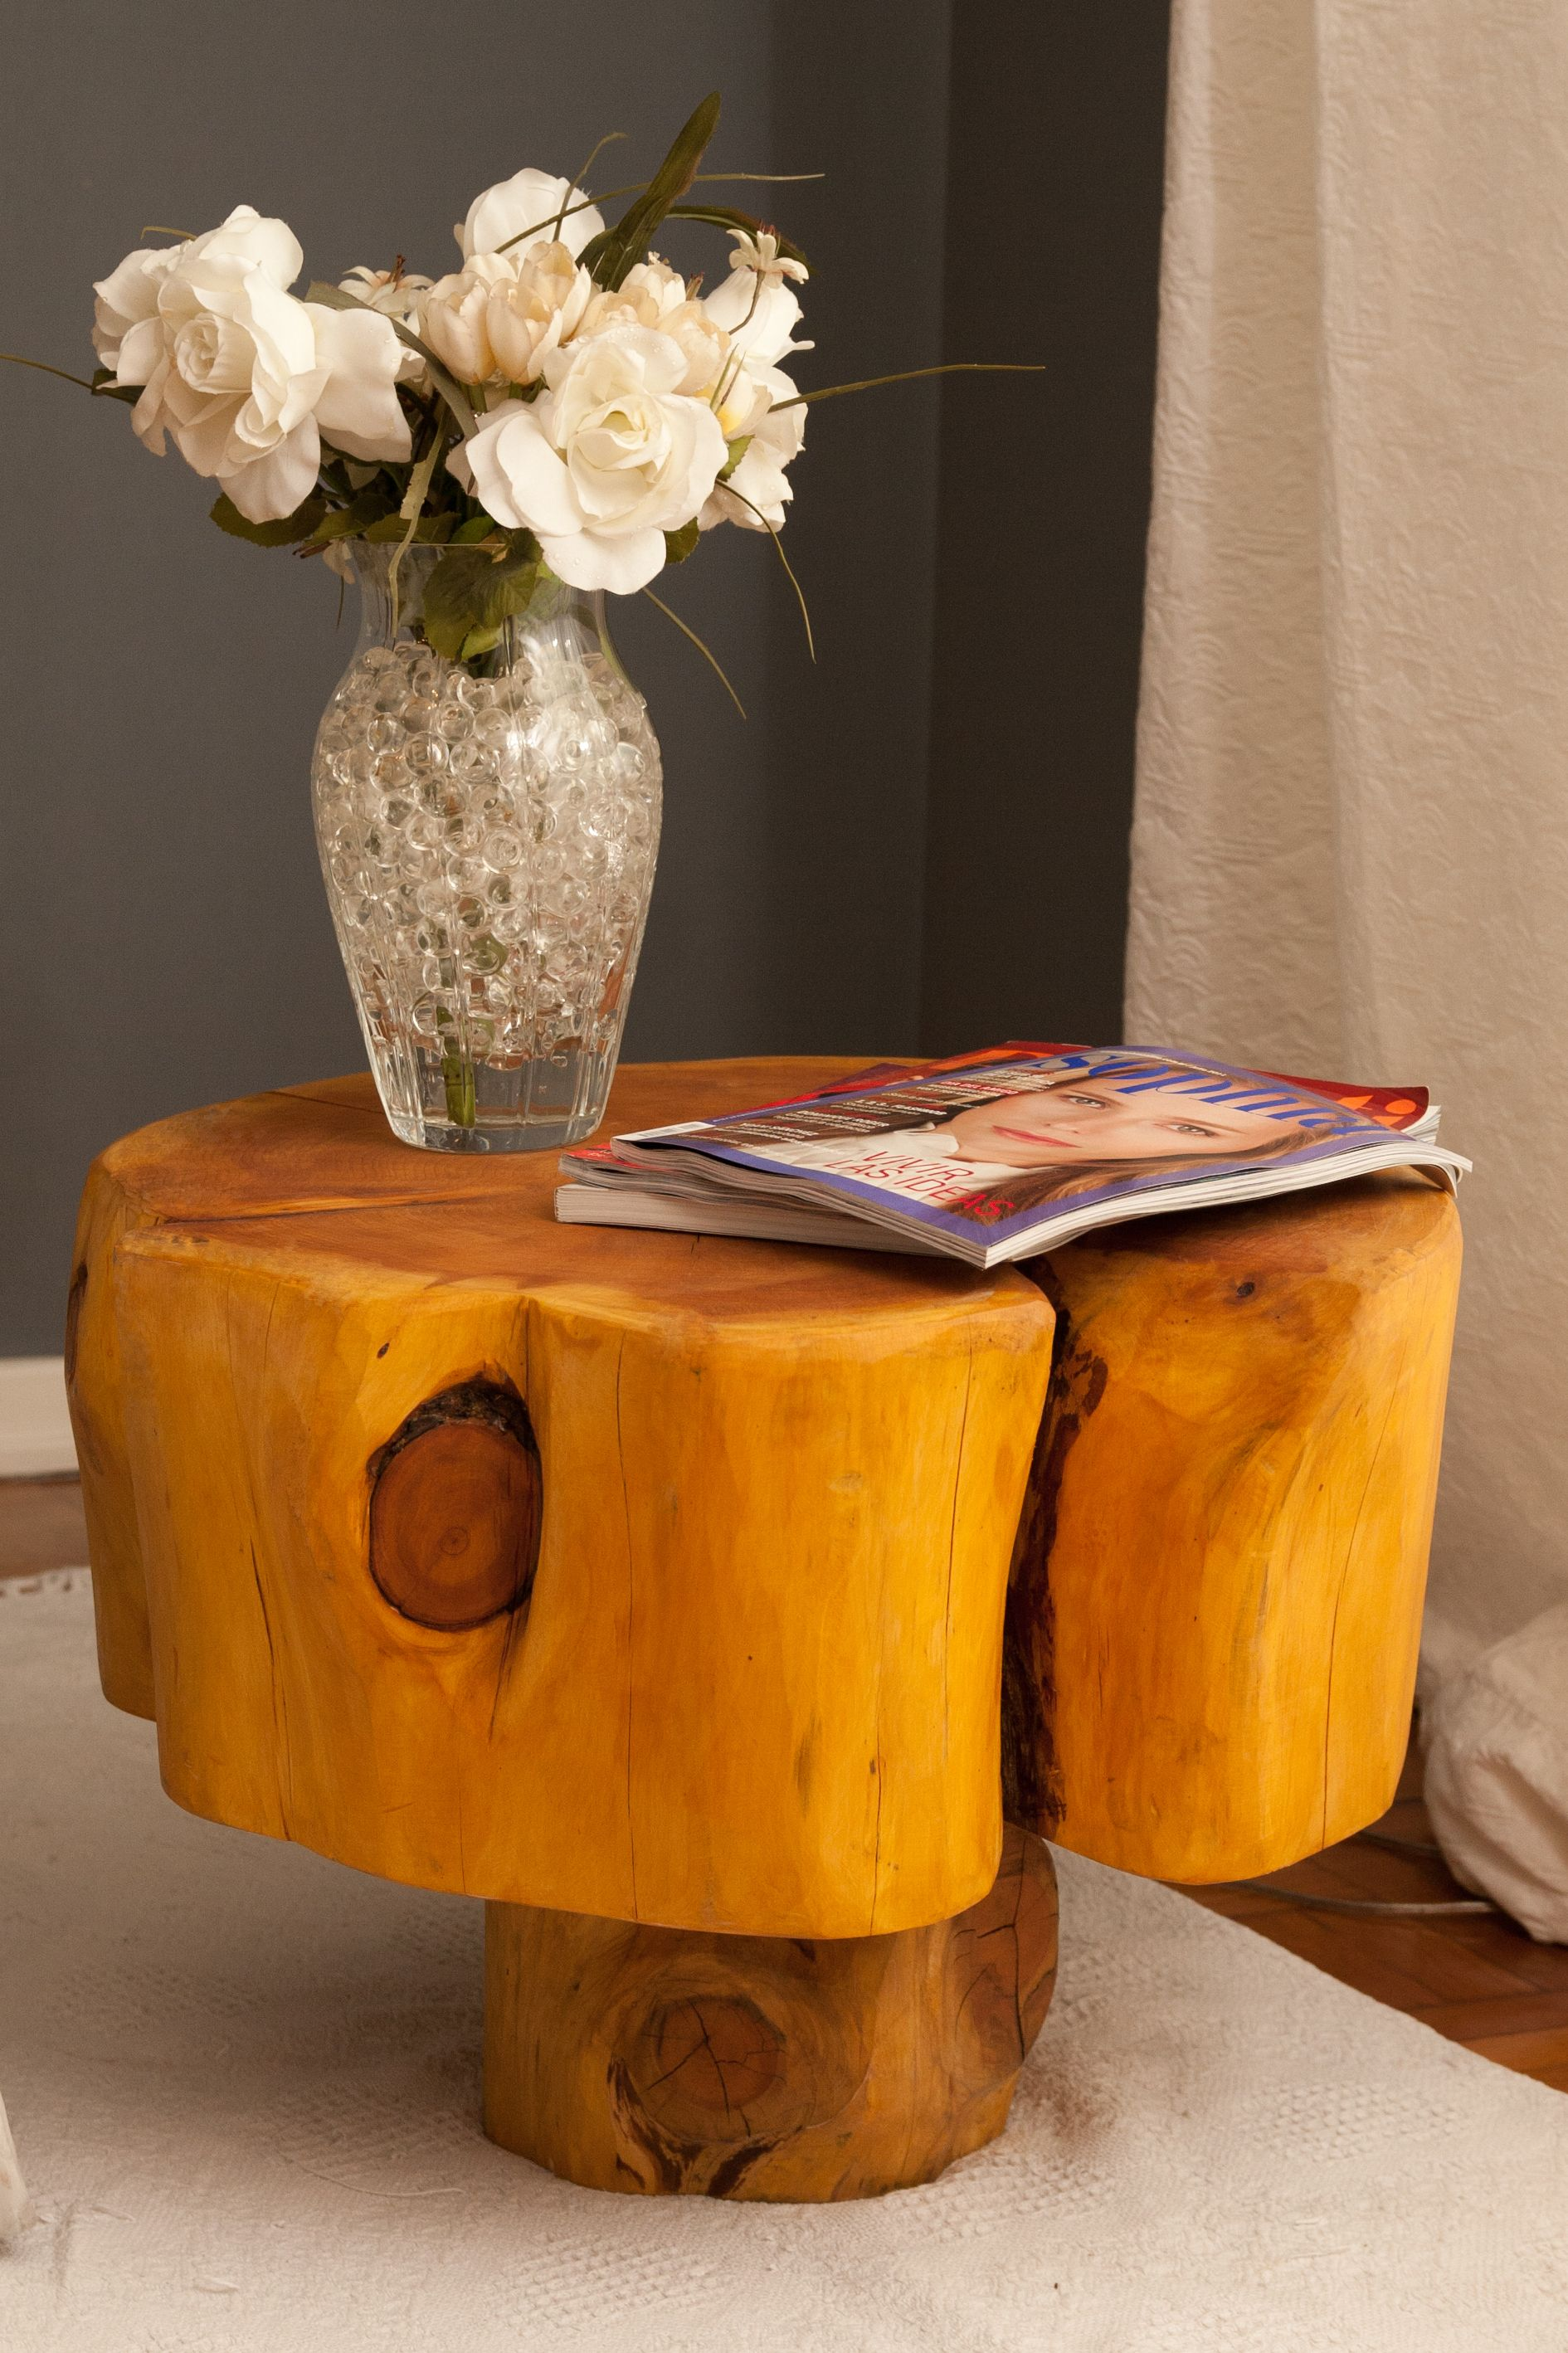 Mushroom Side Tables (With images) | Side table, Table ...